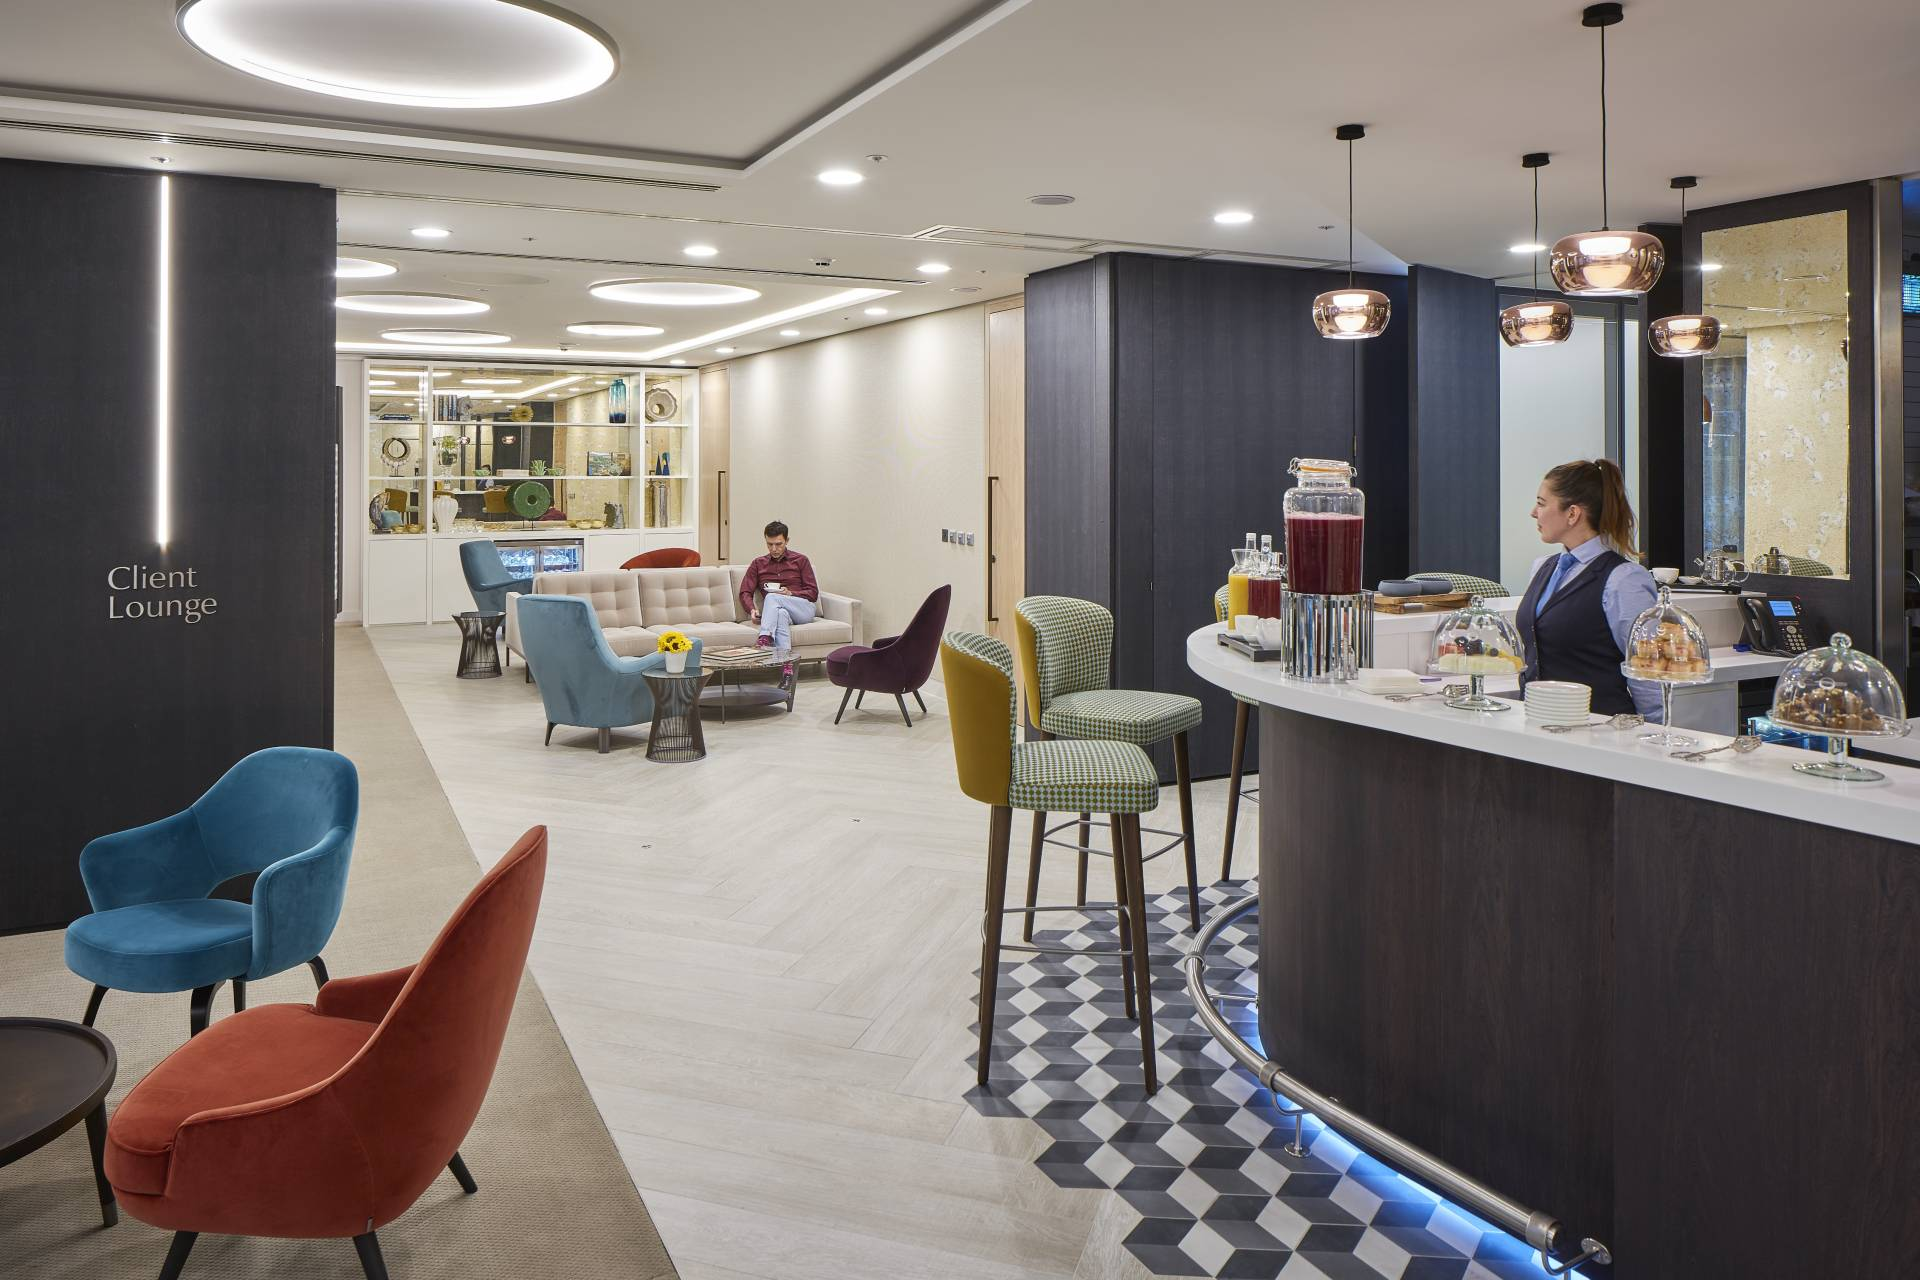 20 Old Bailey Client Lounge with cafe bar